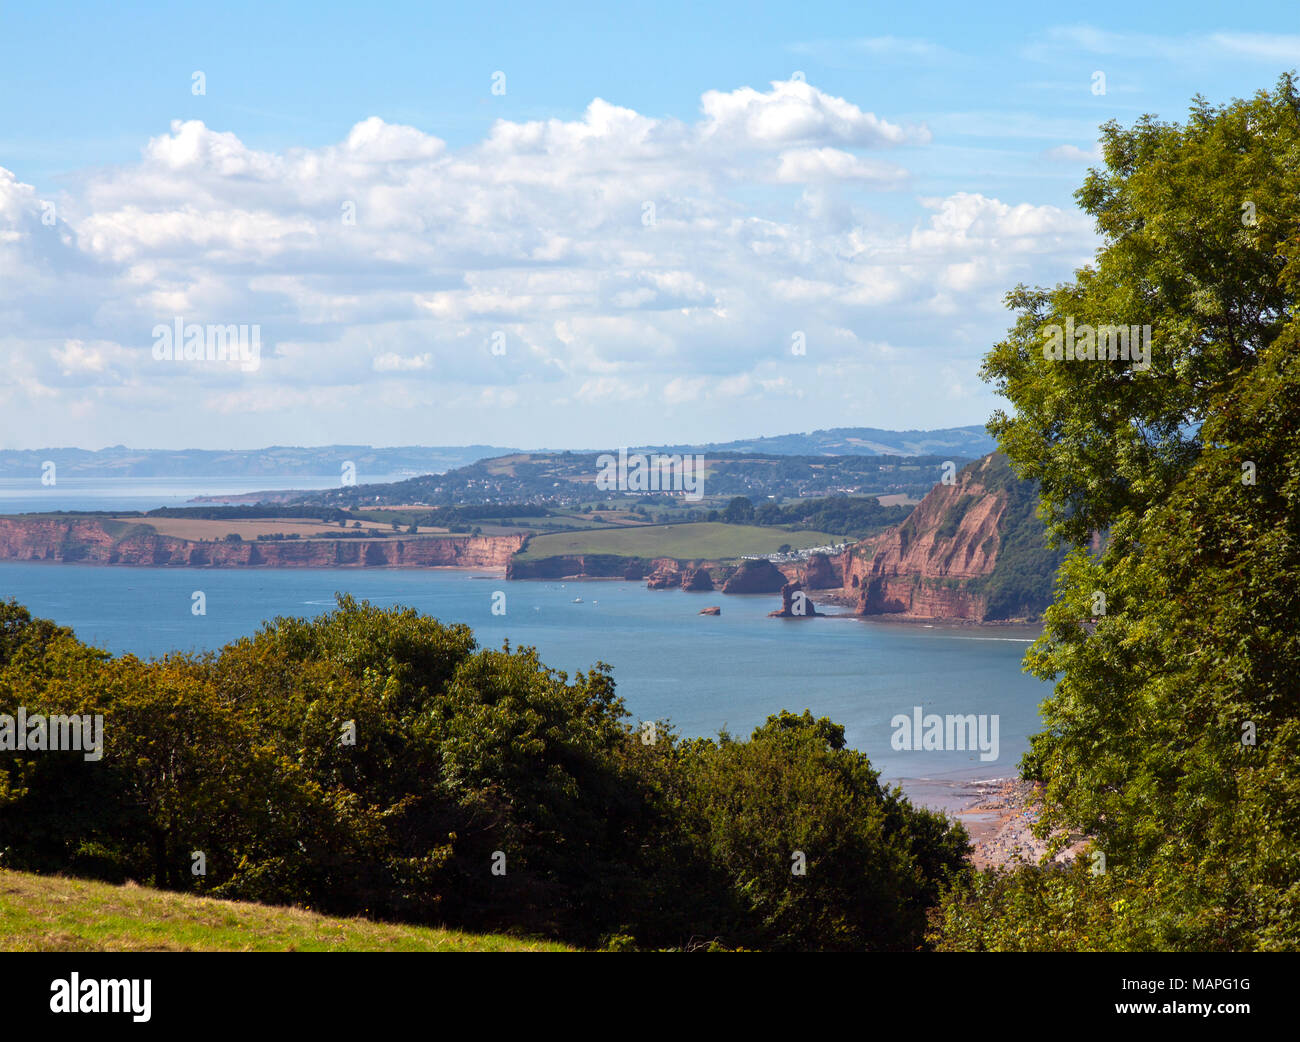 View of the Jurassic Coast (Triassic Period) at Sidmouth, East Devon, England, from the bluffs of Salcombe Hill. - Stock Image